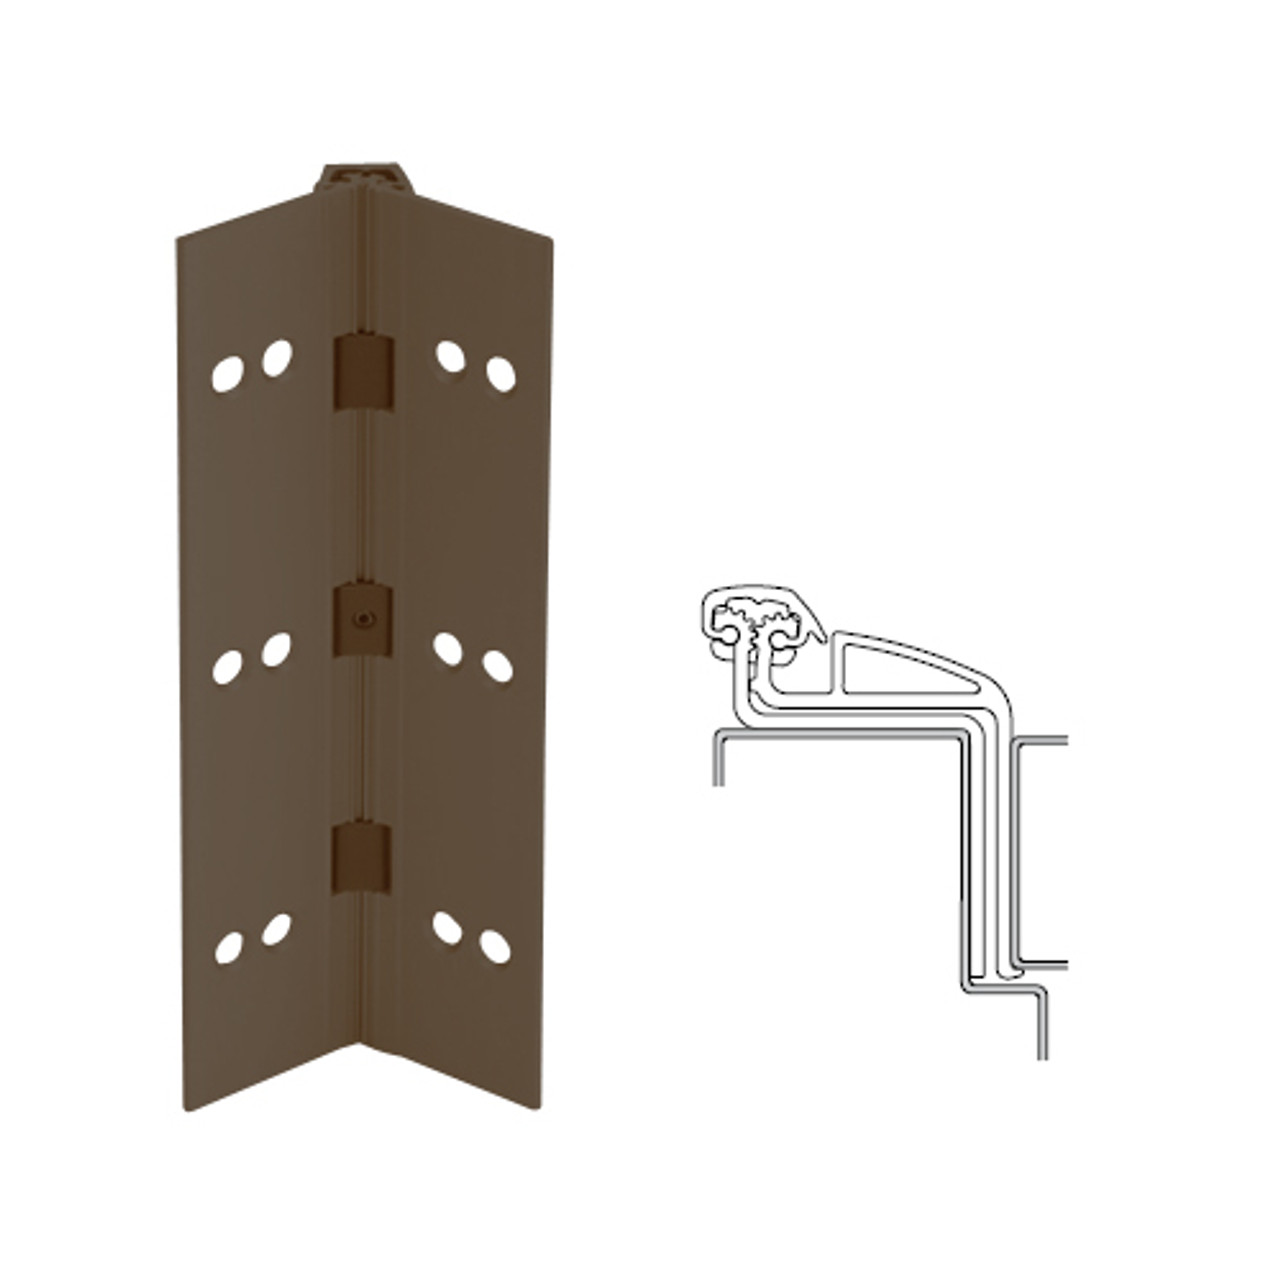 041XY-313AN-120-TFWD IVES Full Mortise Continuous Geared Hinges with Thread Forming Screws in Dark Bronze Anodized